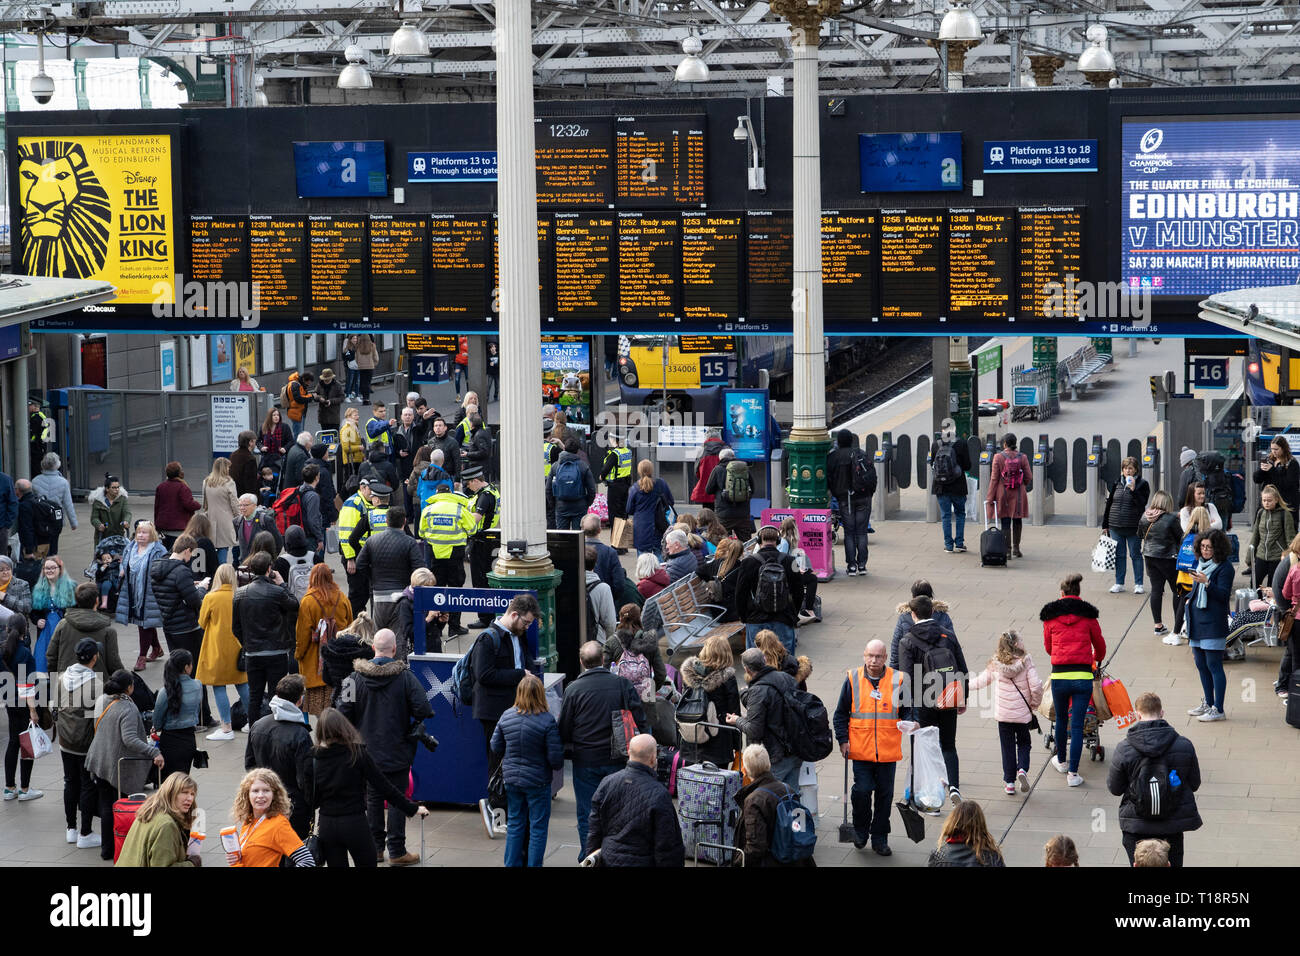 Busy passenger concourse at Waverley Station iN Edinburgh, Scotland, UK - Stock Image